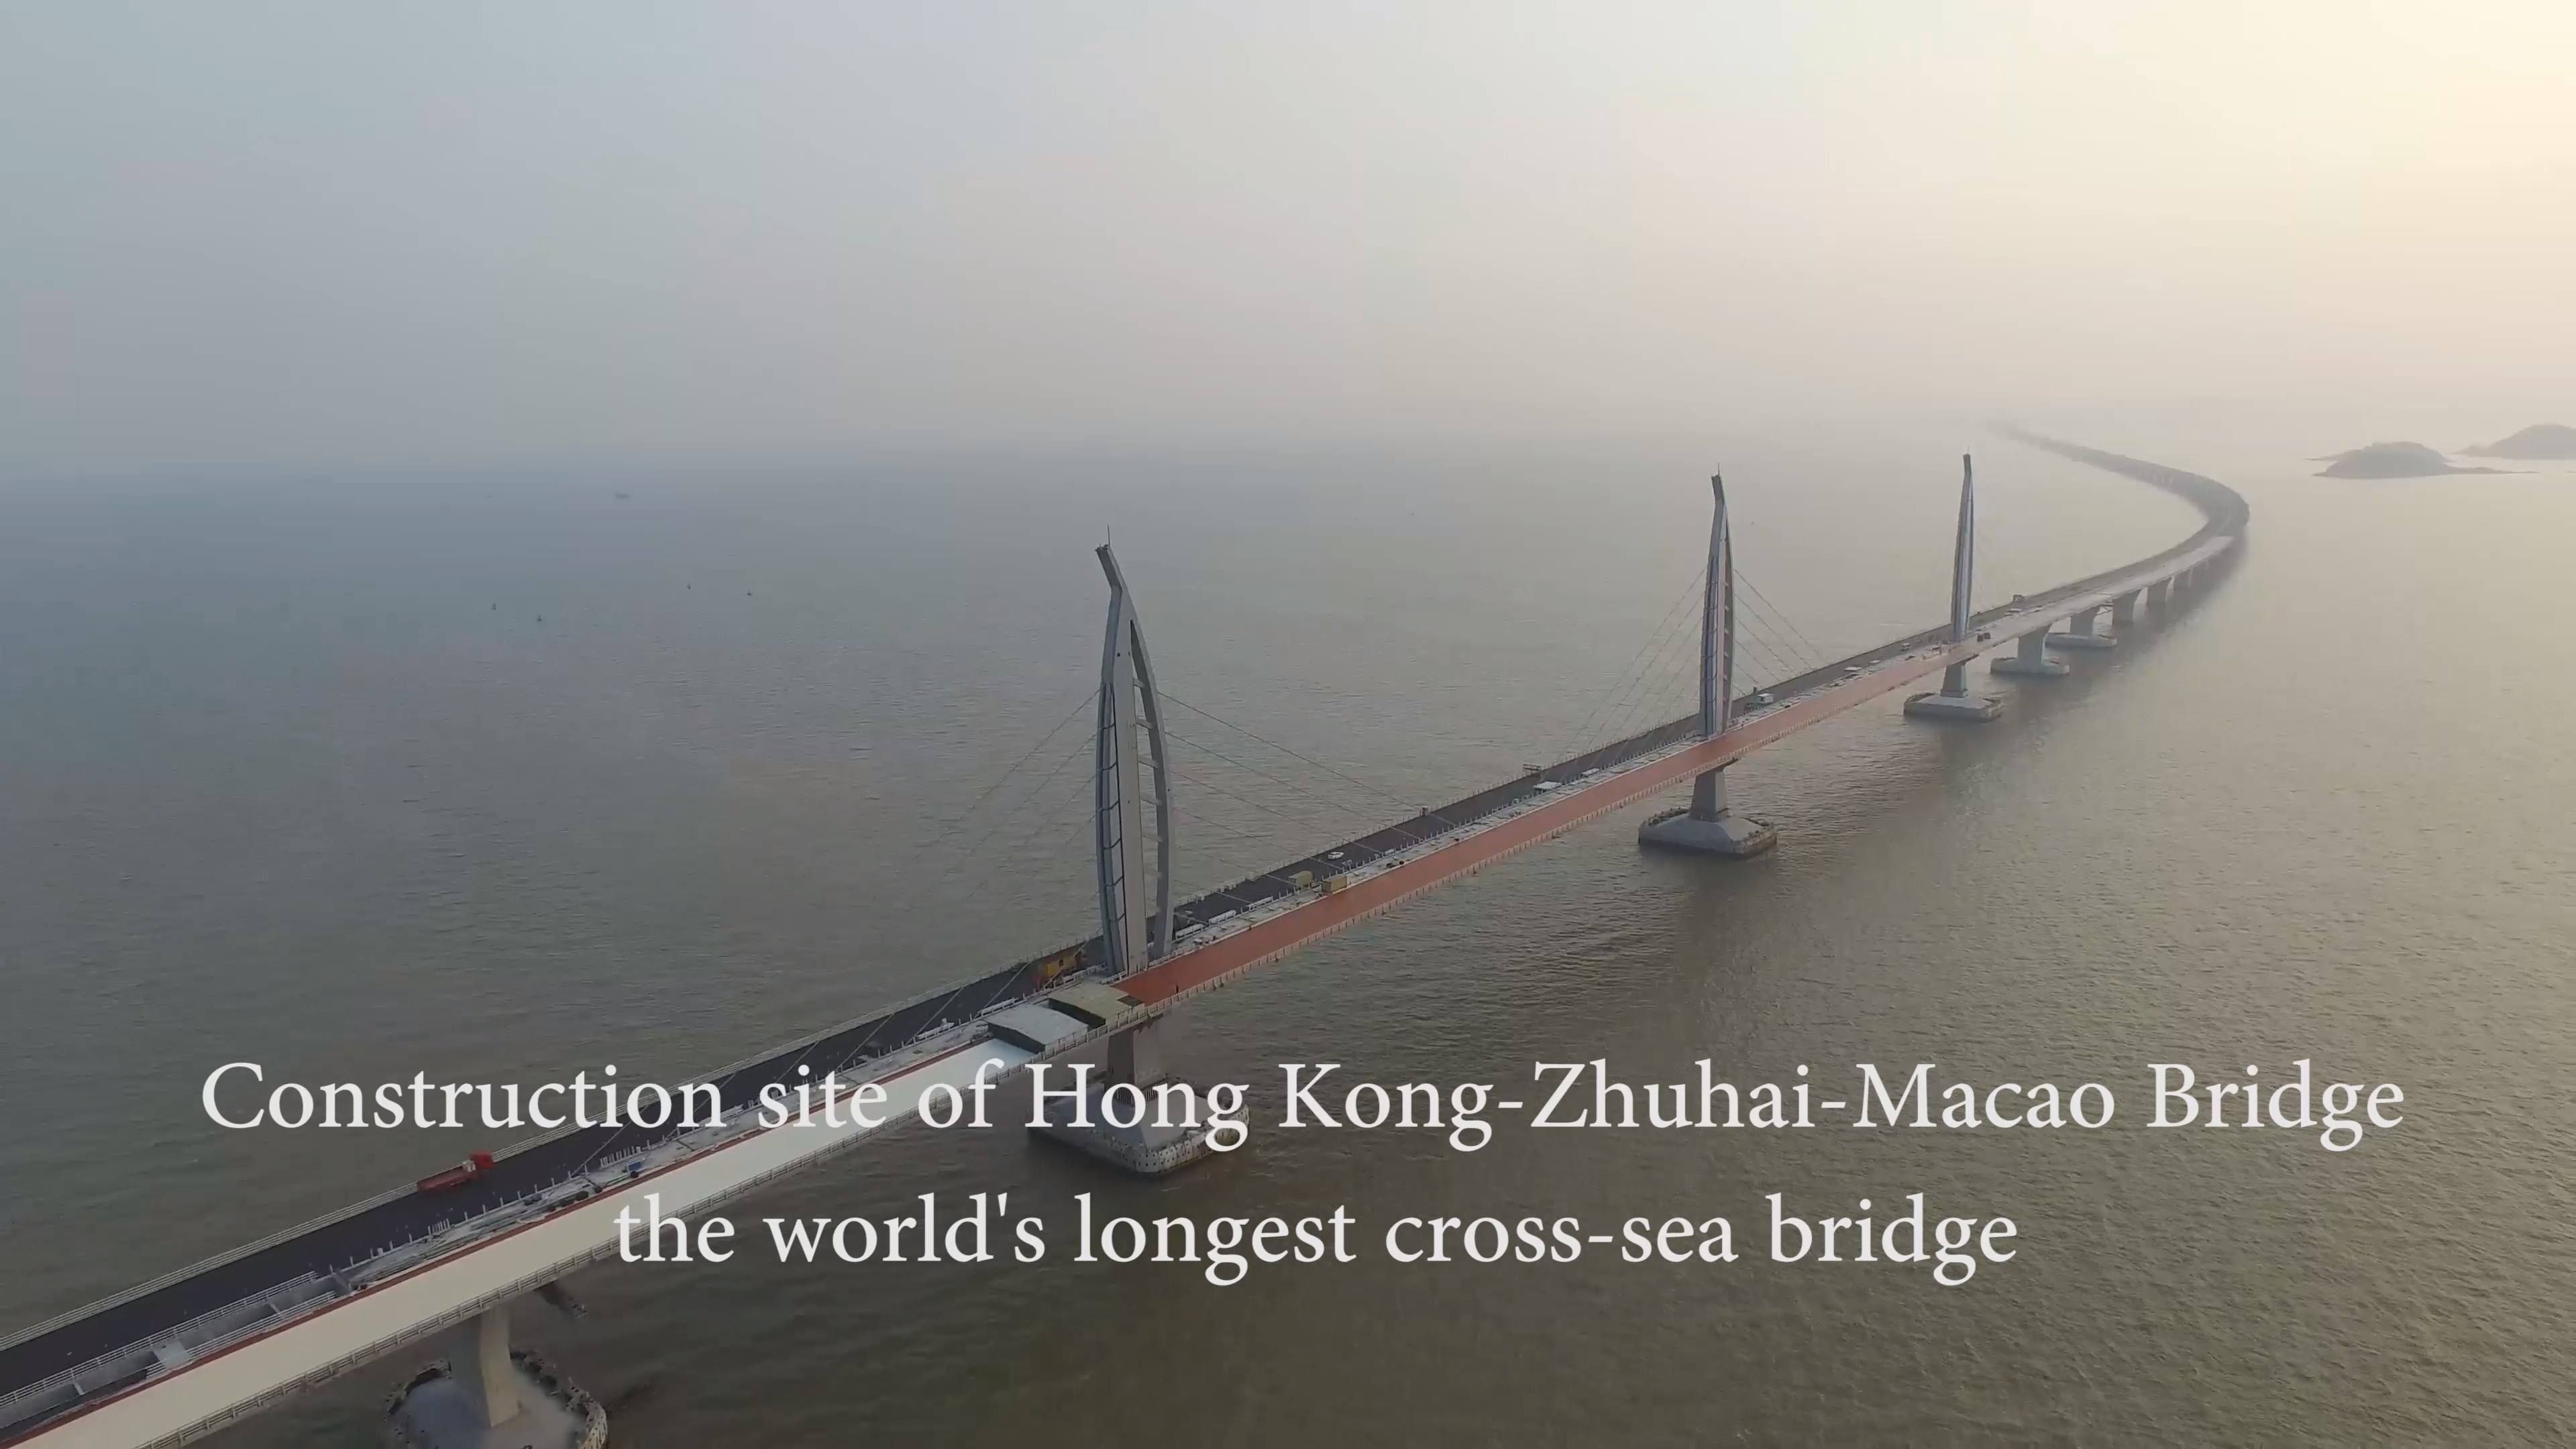 Key part of world's longest cross-sea bridge installed. More than 400,000 tonnes of steel have been consumed in a 6.7-km undersea tunnel and a 22.9-km bridge, enough to build 60 Eiffel Towers.   The Y-shaped bridge starts from Lantau Island in Hong Kong with branches to Zhuhai and Macao.   The bridge will cut travel time from Hong Kong to both Zhuhai and Macao from the current three hours on the road or one hour at sea to a mere half hour drive.